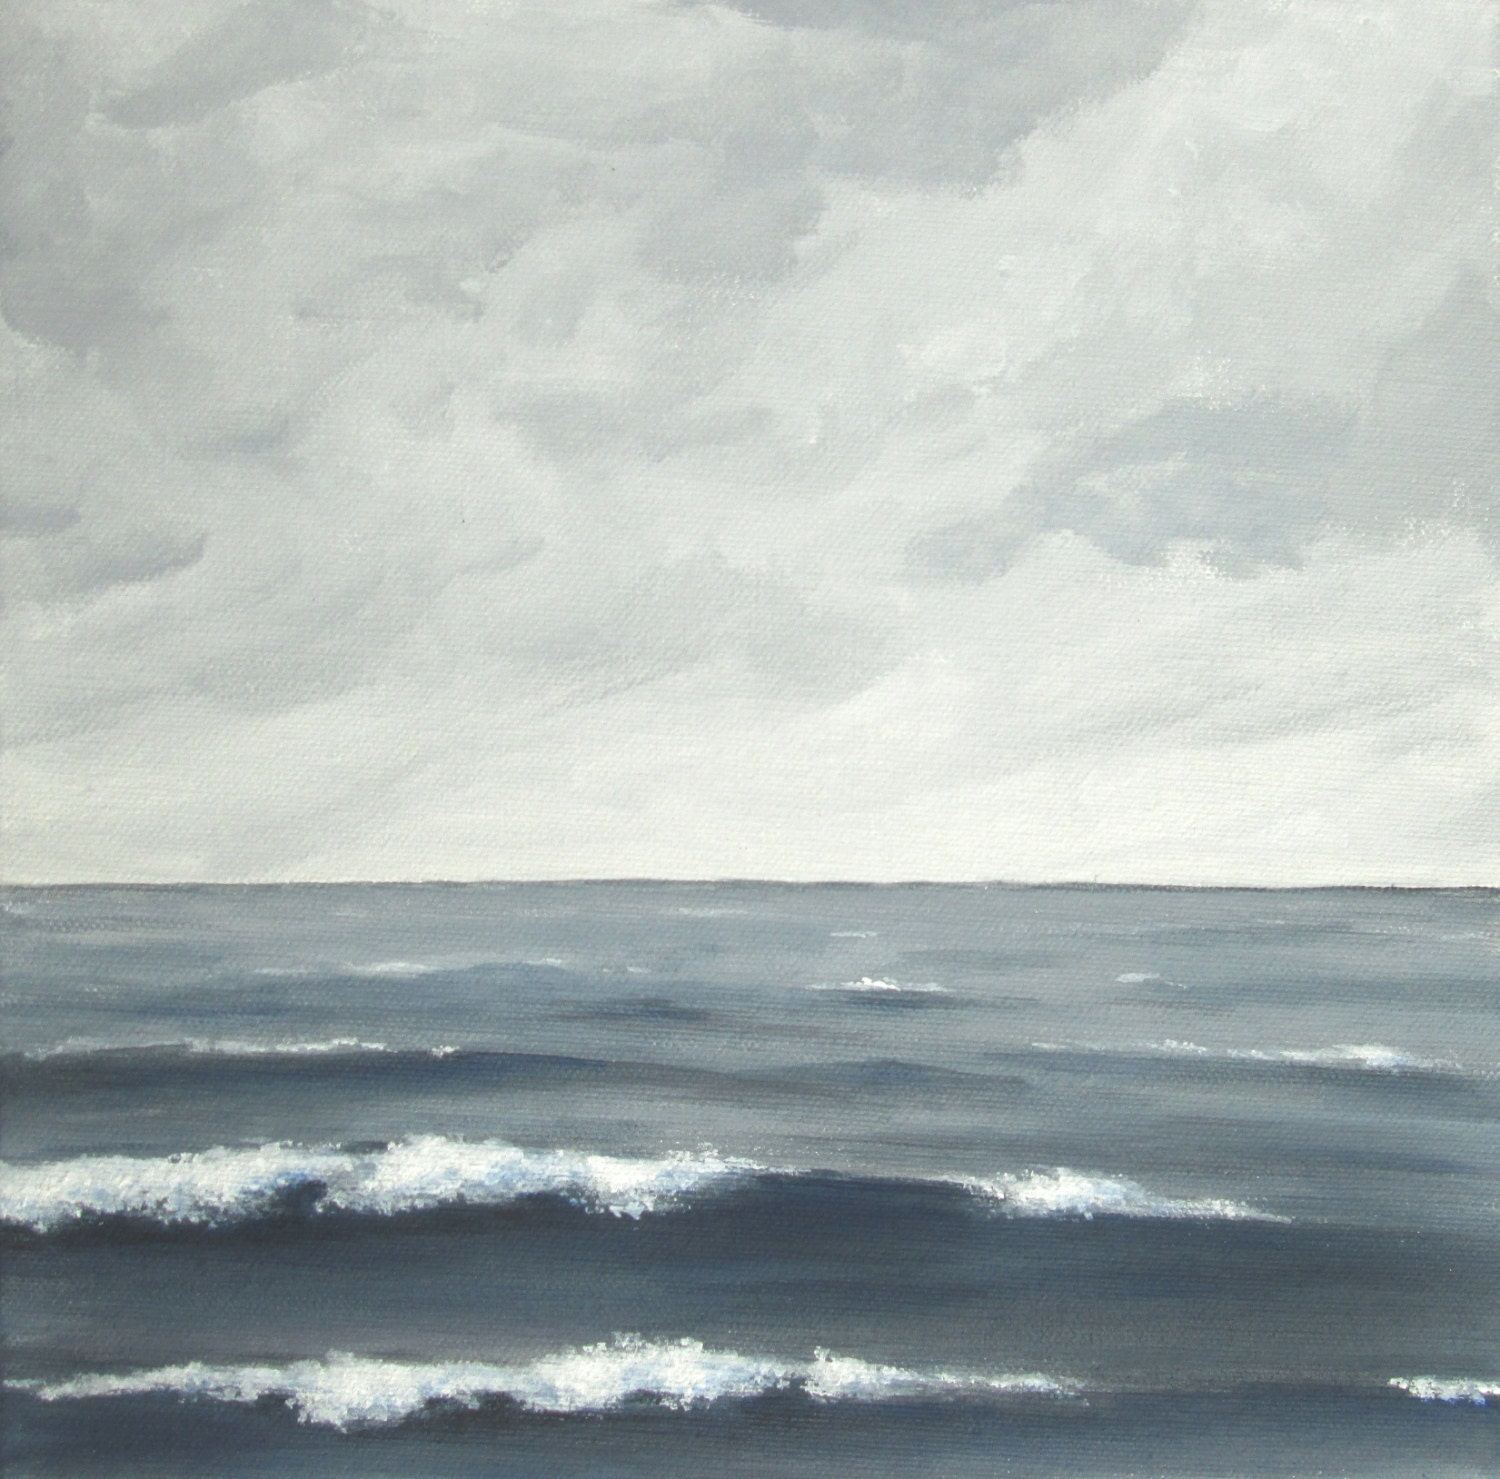 stormy sea painting, grey sea fine art, gray seascape, cloudy seascape, choppy sea painting, sea, clouds, ocean